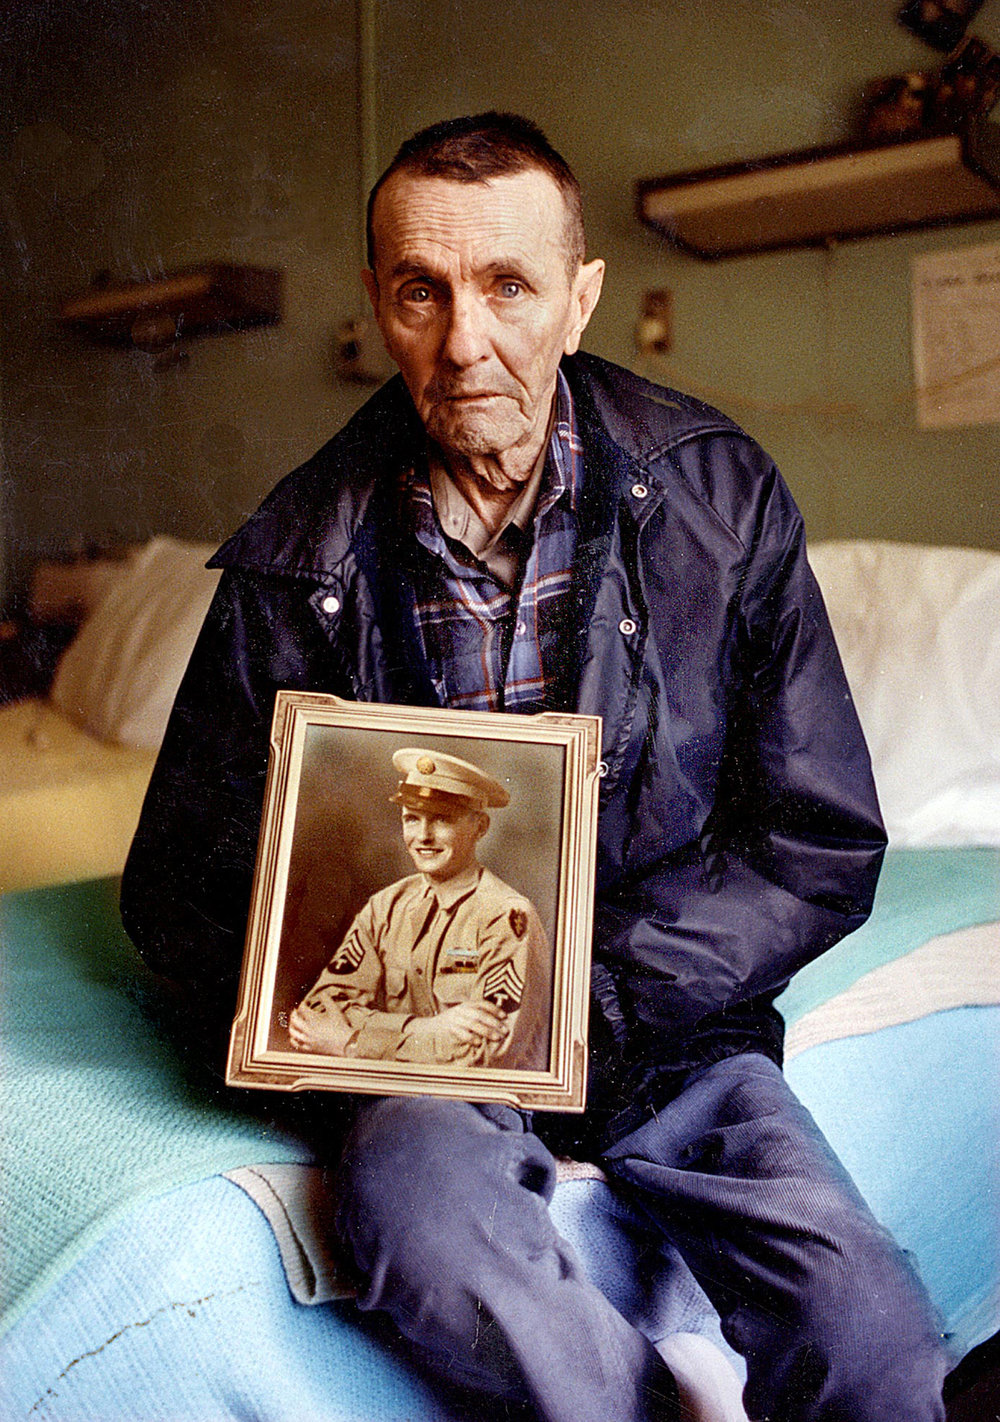 George Siegler holds a portrait of himself that was taken when he was a sergeant in the U.S. Army during World War II. Siegler's portrait was published Aug. 20, 1990 with a story on the Illinois Veterans Home in Quincy. [Bill Hagen/The State Journal-Register]